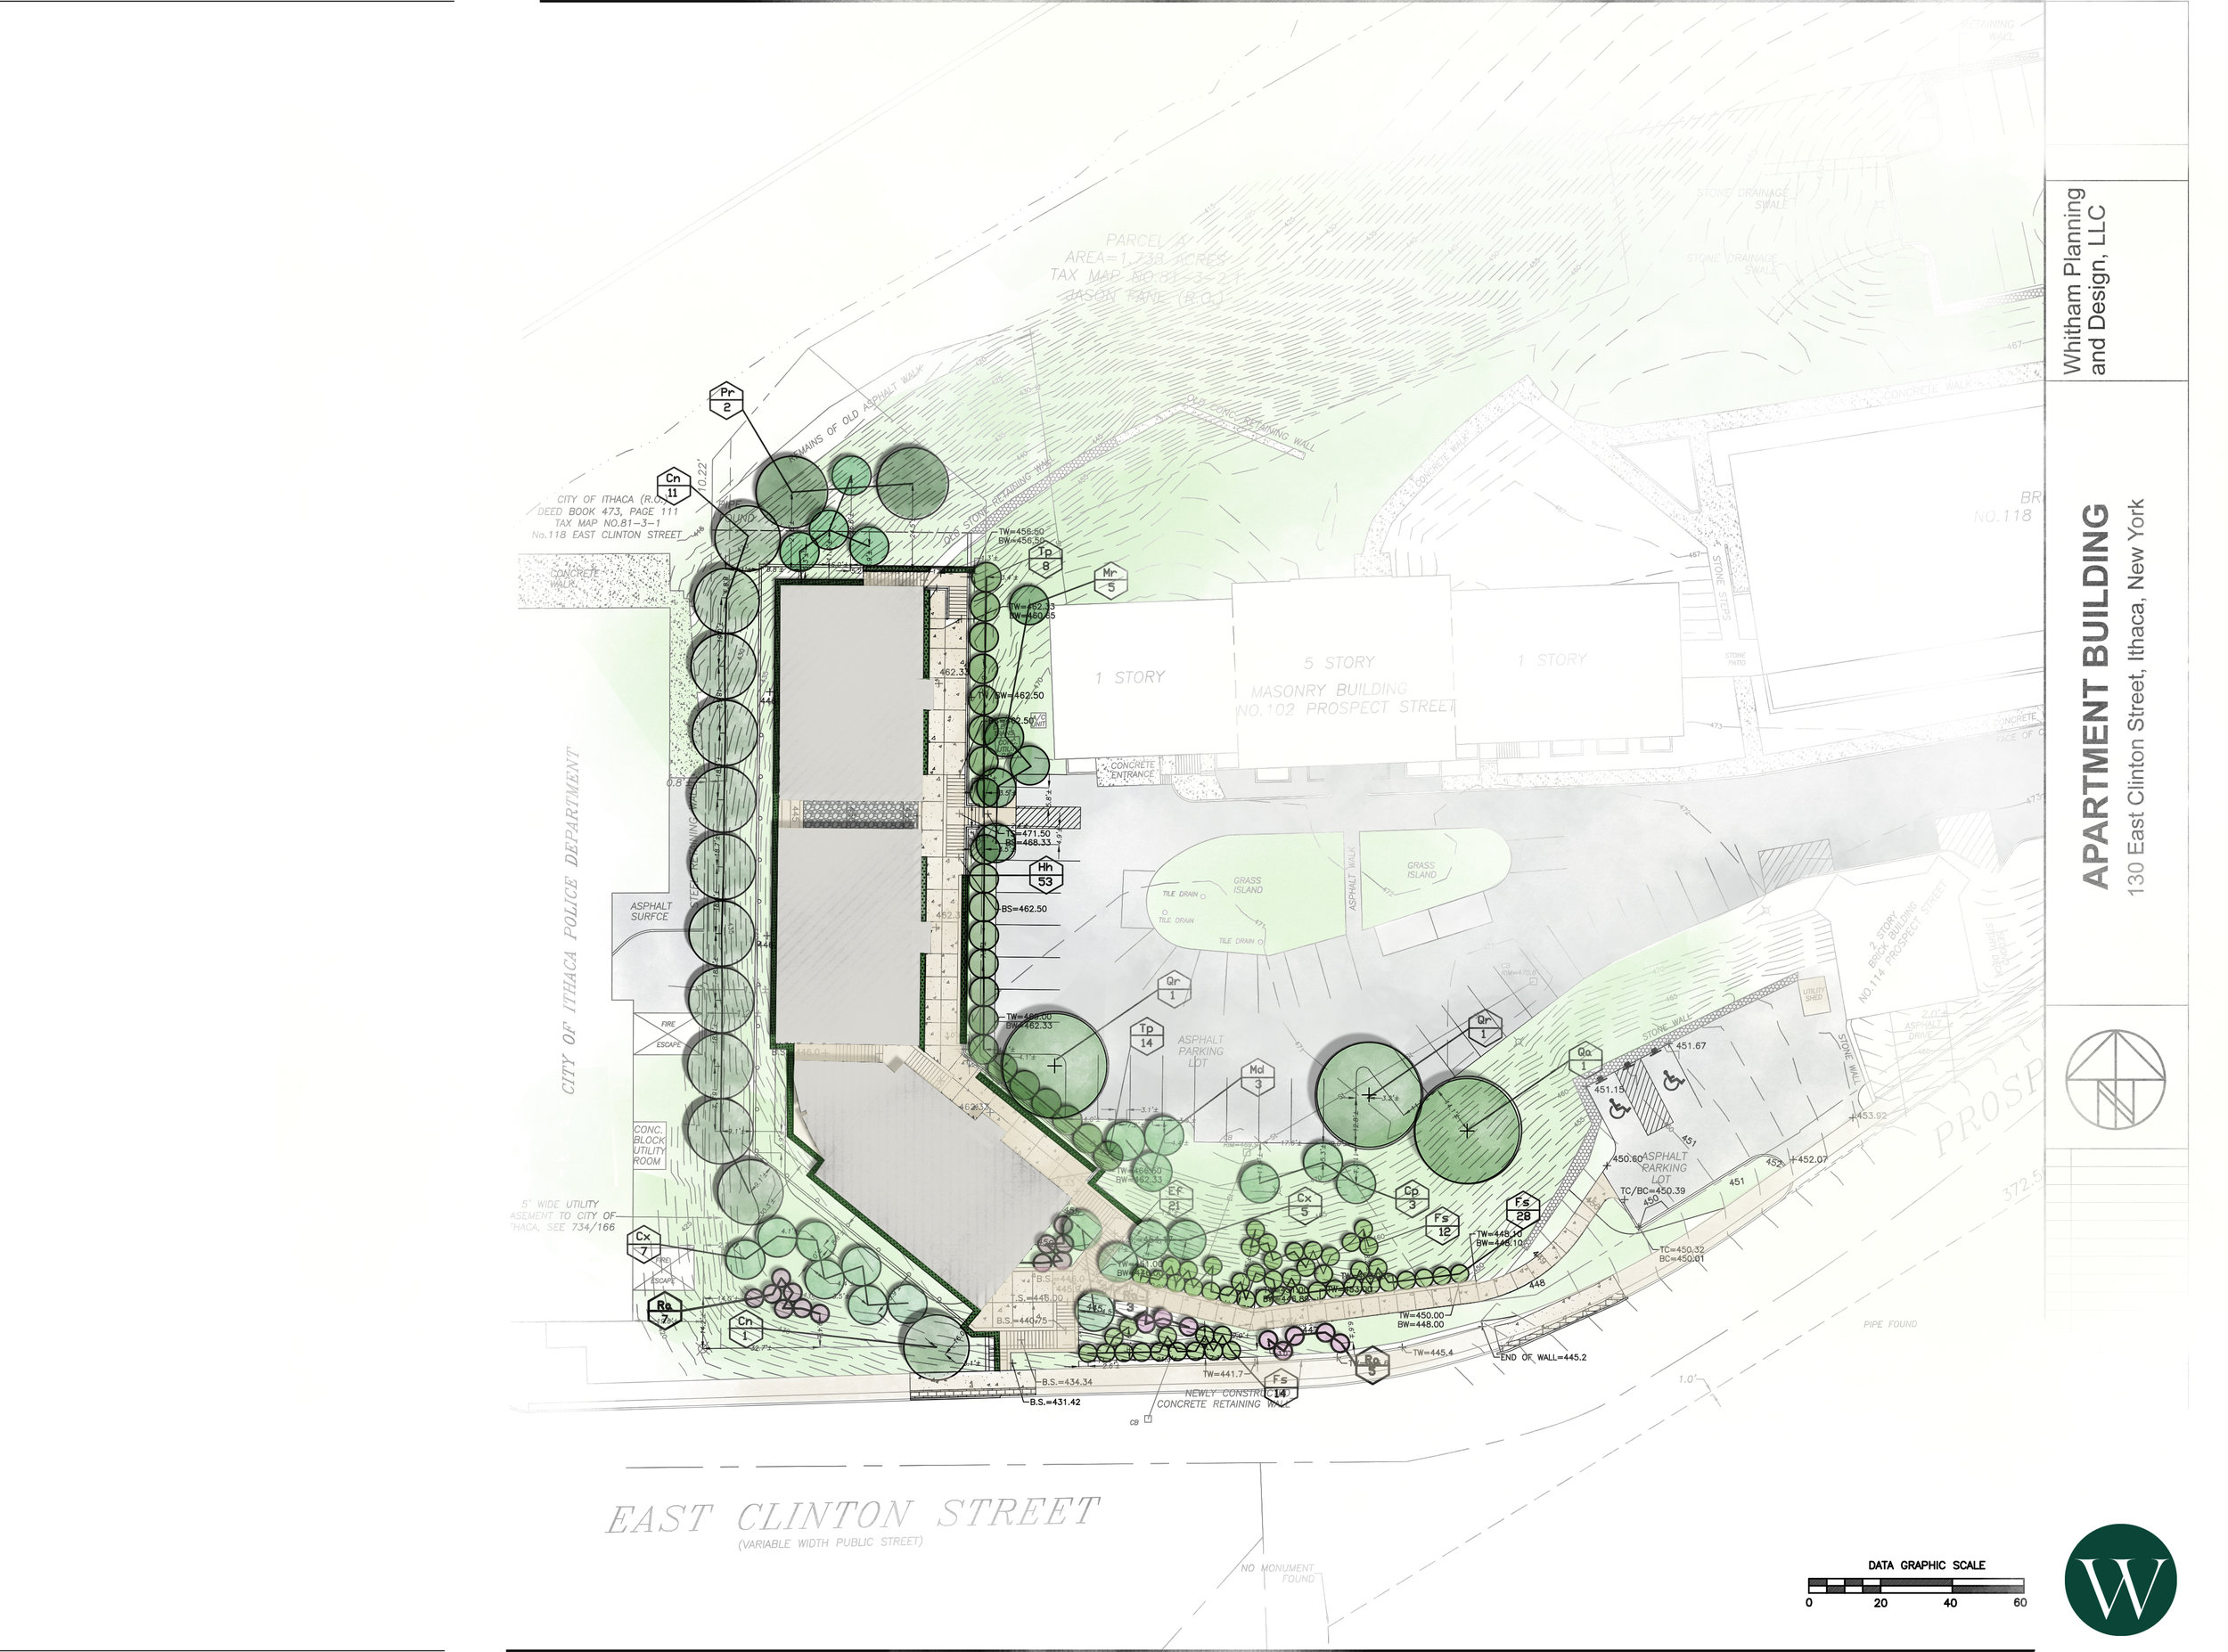 160810_Clinton_Site Plan_Render.jpg